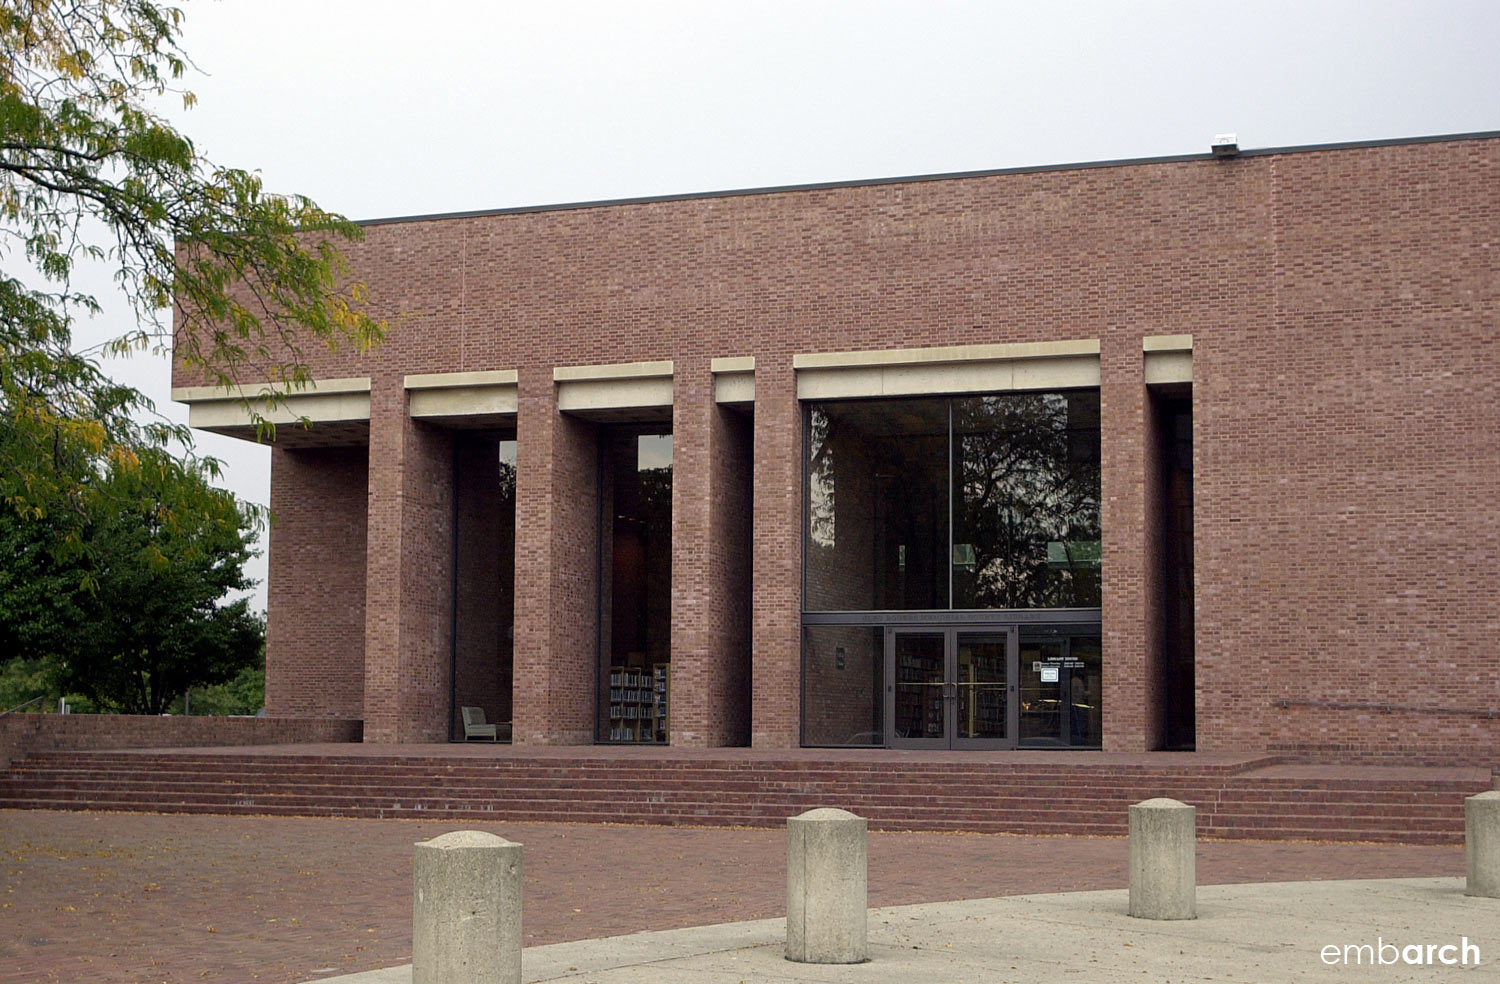 Cleo Rodgers Memorial Library